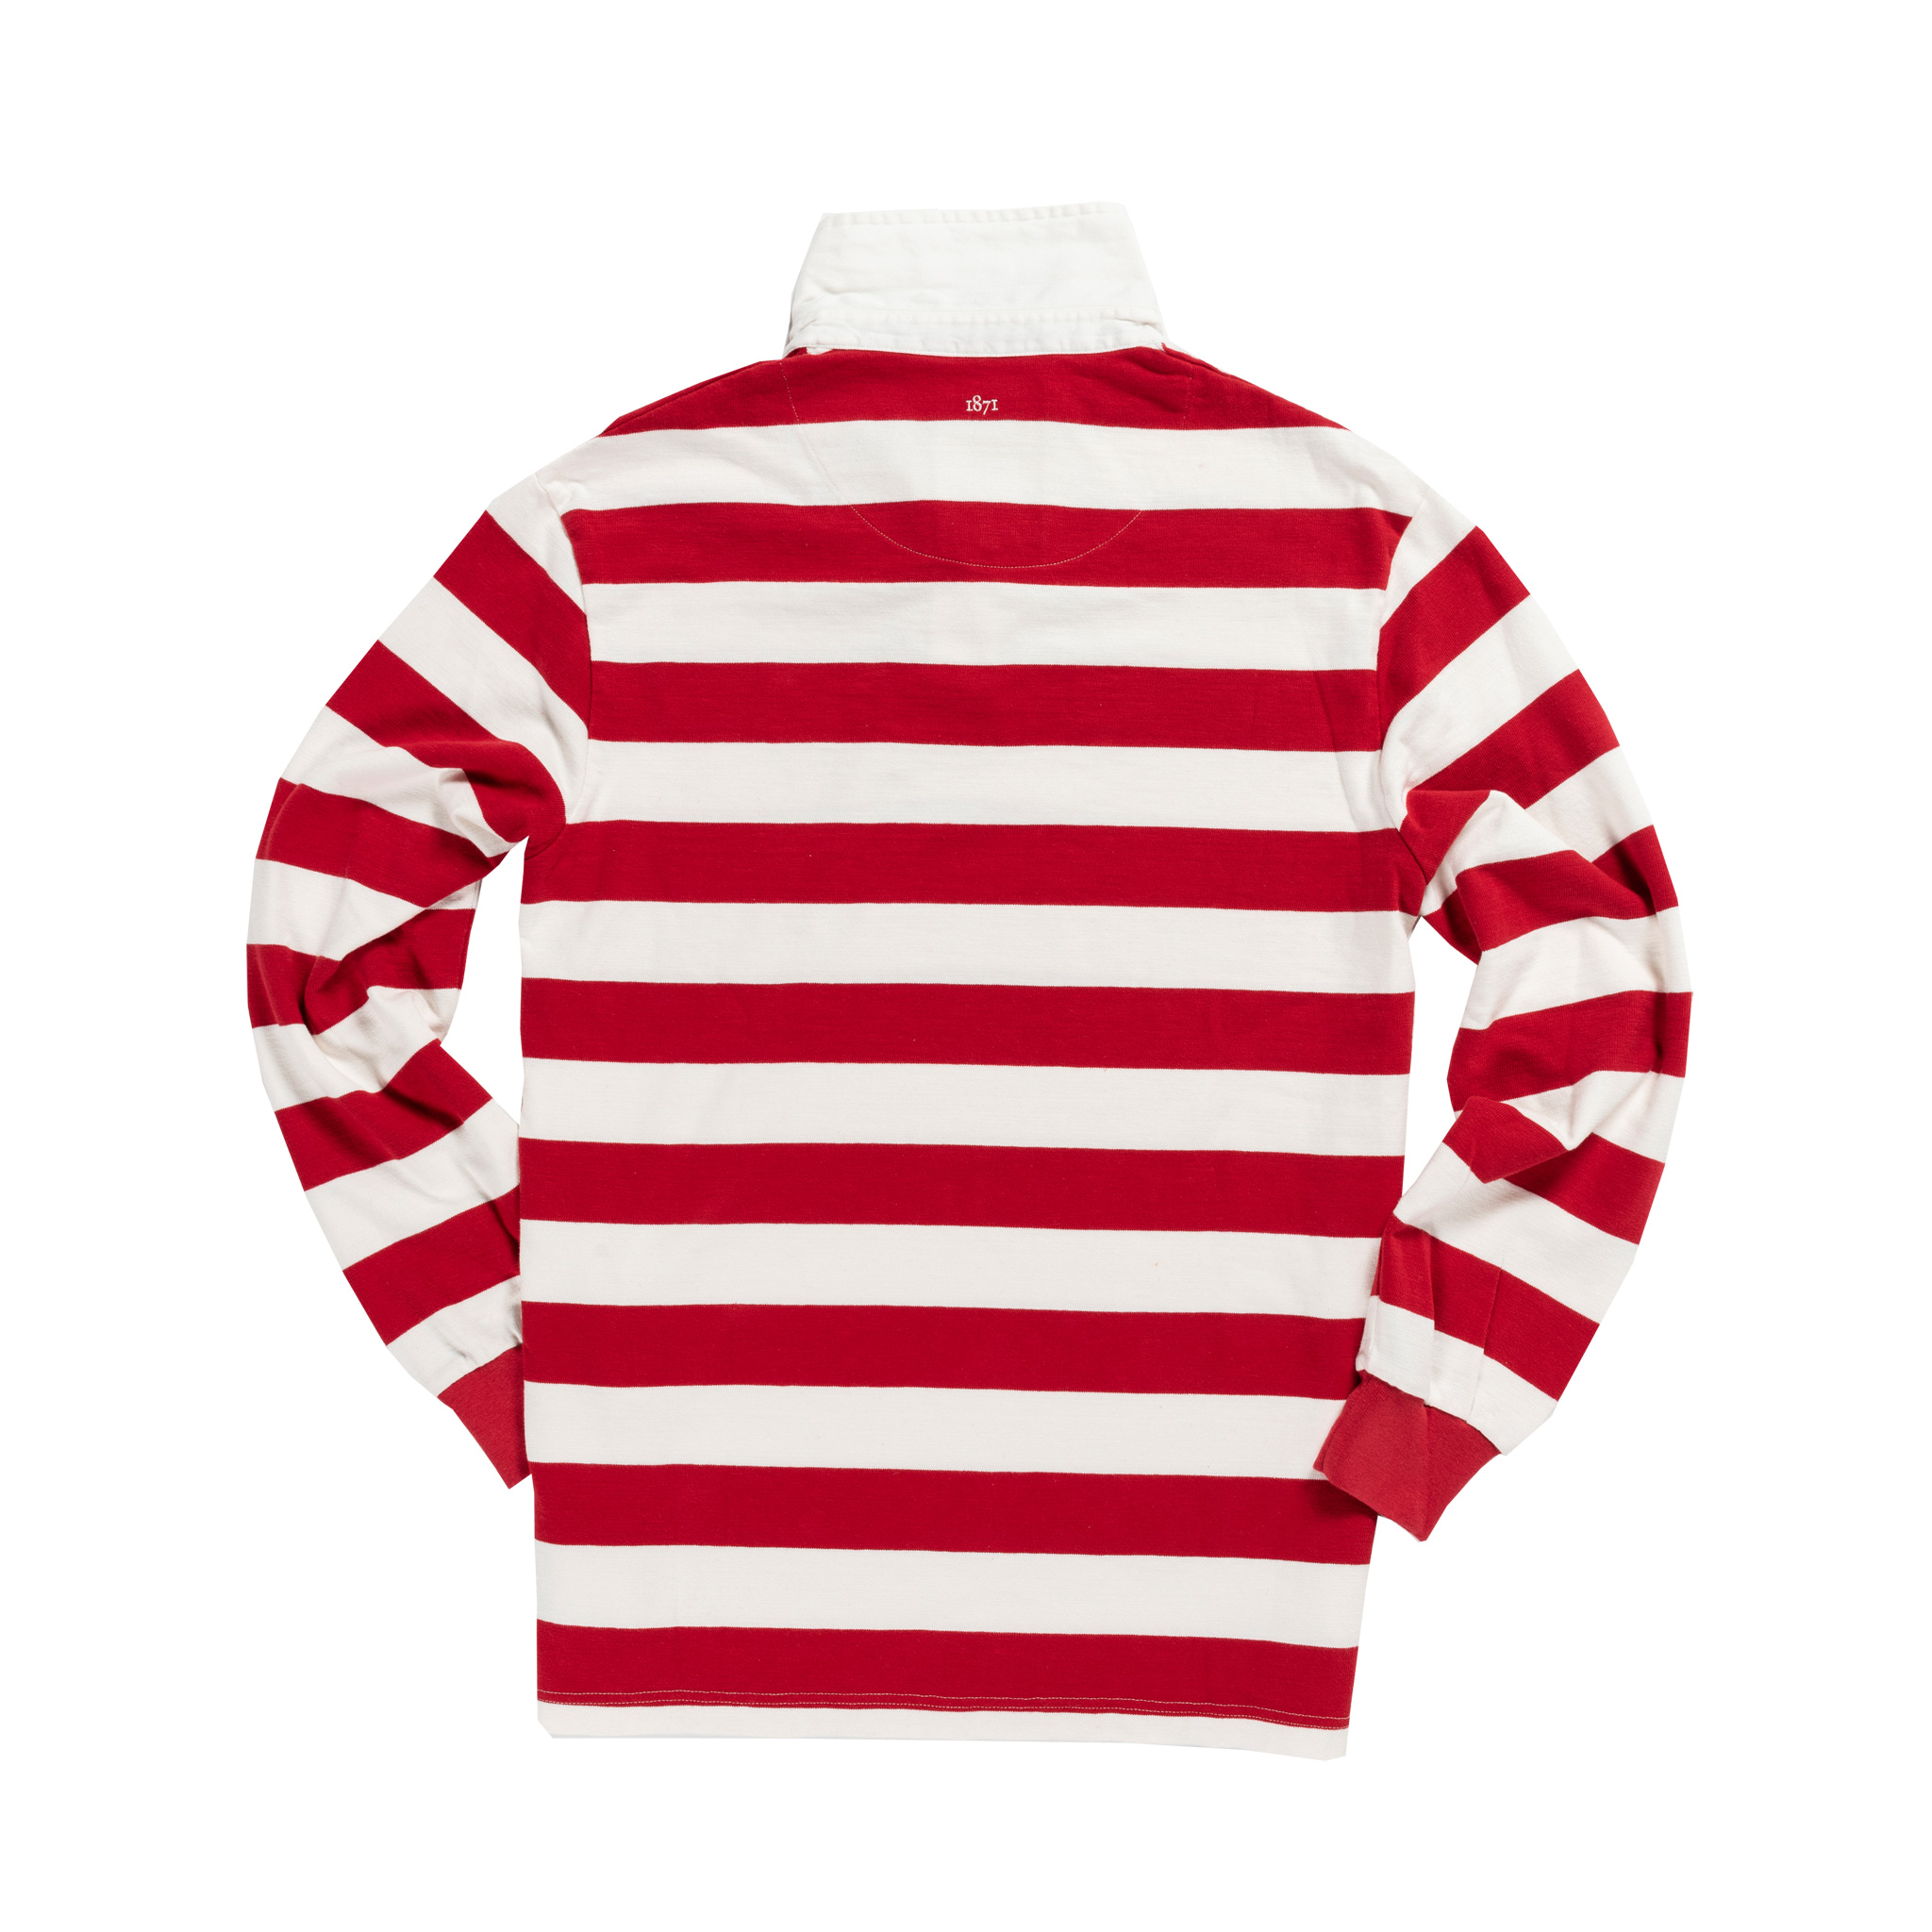 England 1871 Sky Red and White Vintage Rugby Shirt_Back